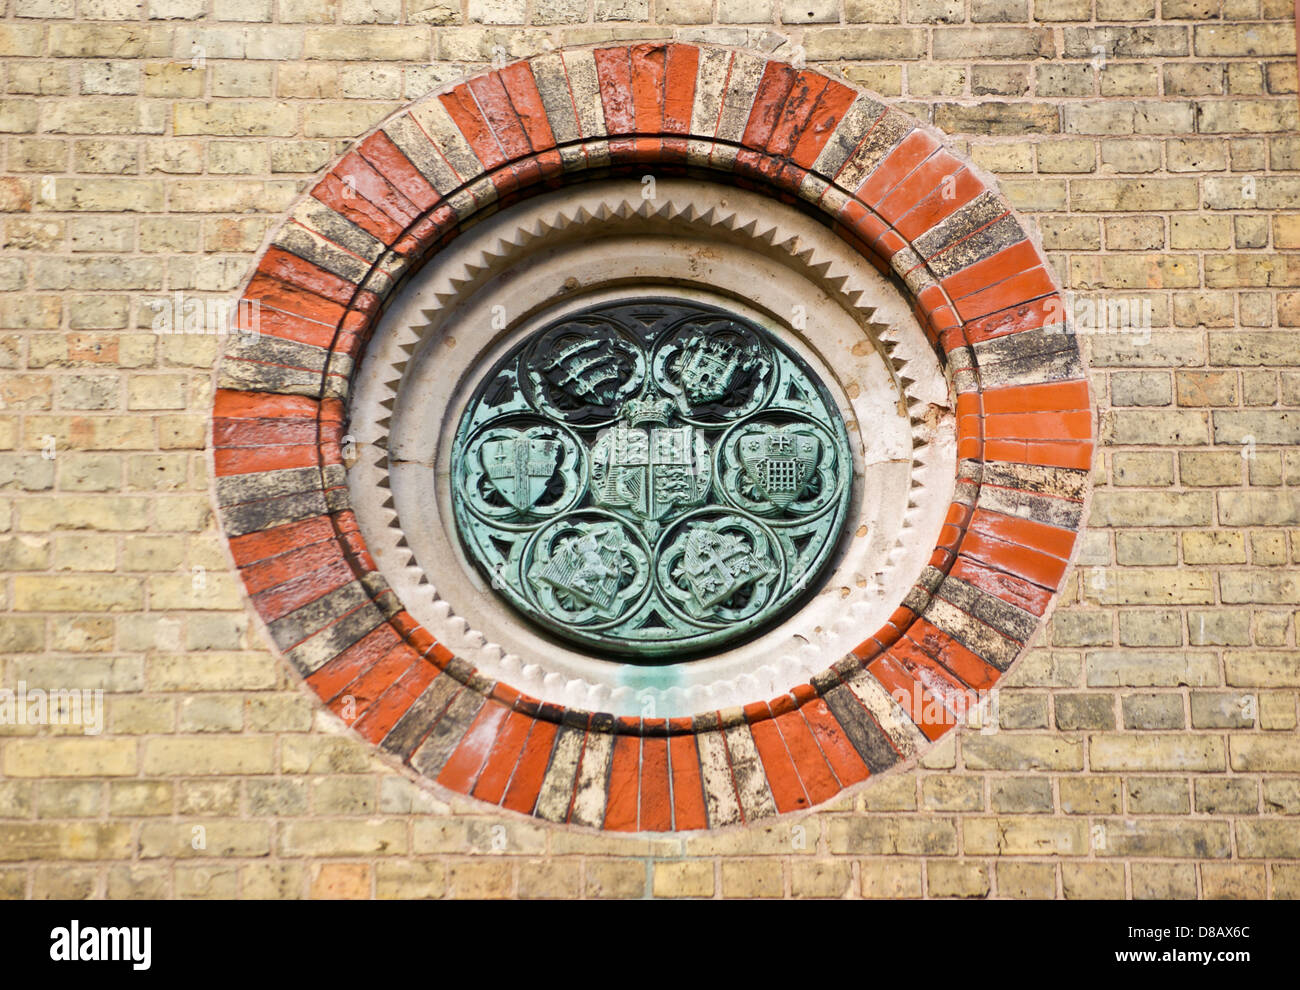 Medallion of local authorities, Abbey Mills sewage pumping station 1868 by Bazalgette and Cooper, Stratford, London, - Stock Image